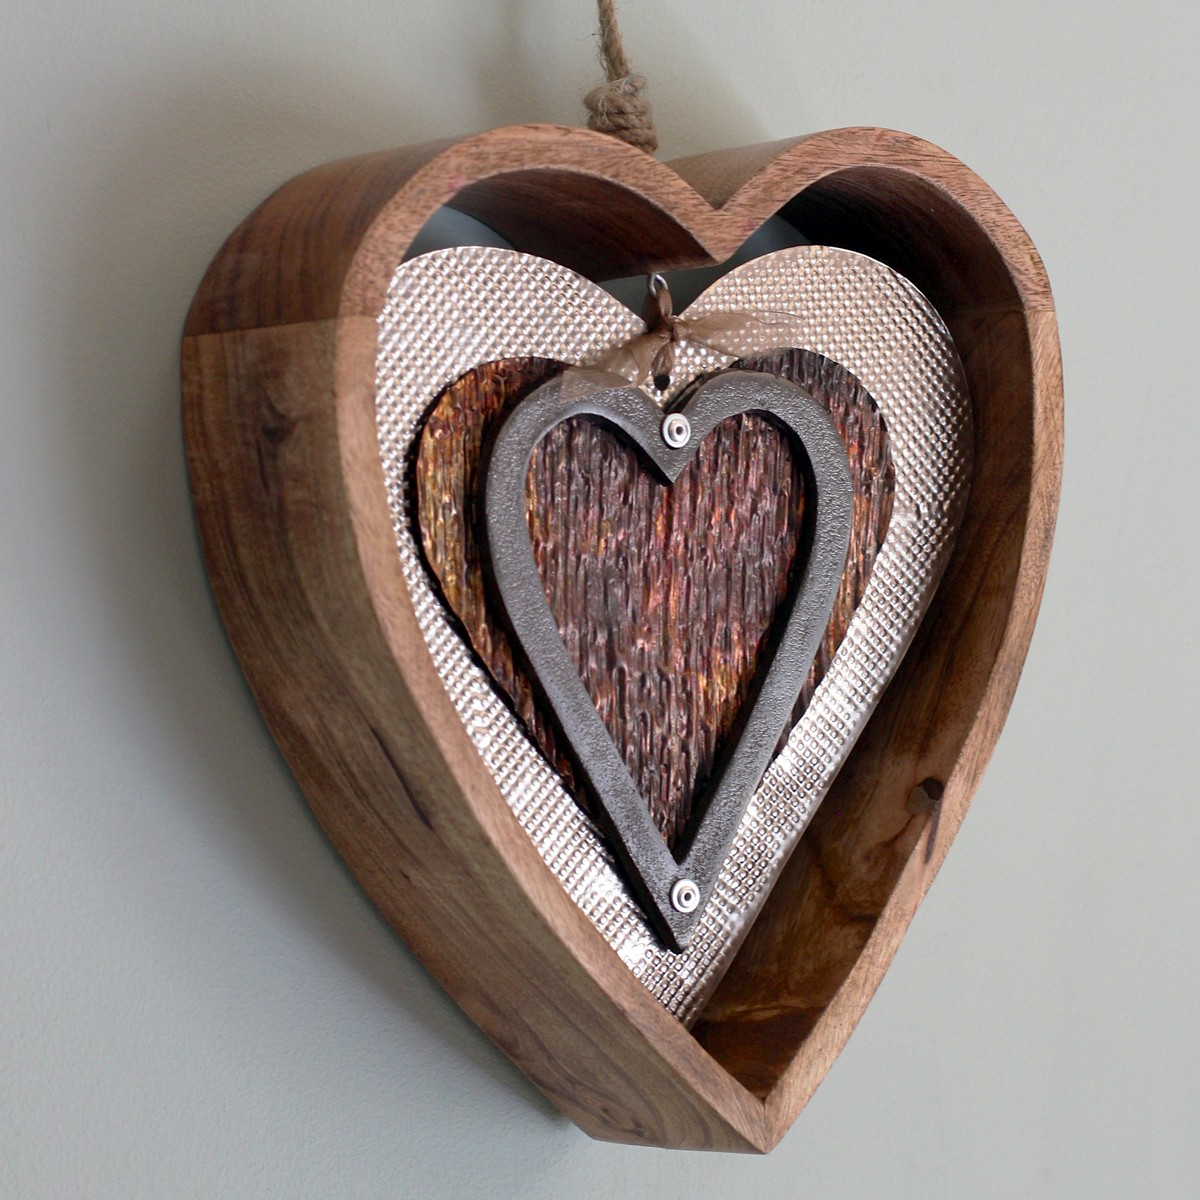 Carol braden llc wooden heart wall decor for Wooden heart wall decor